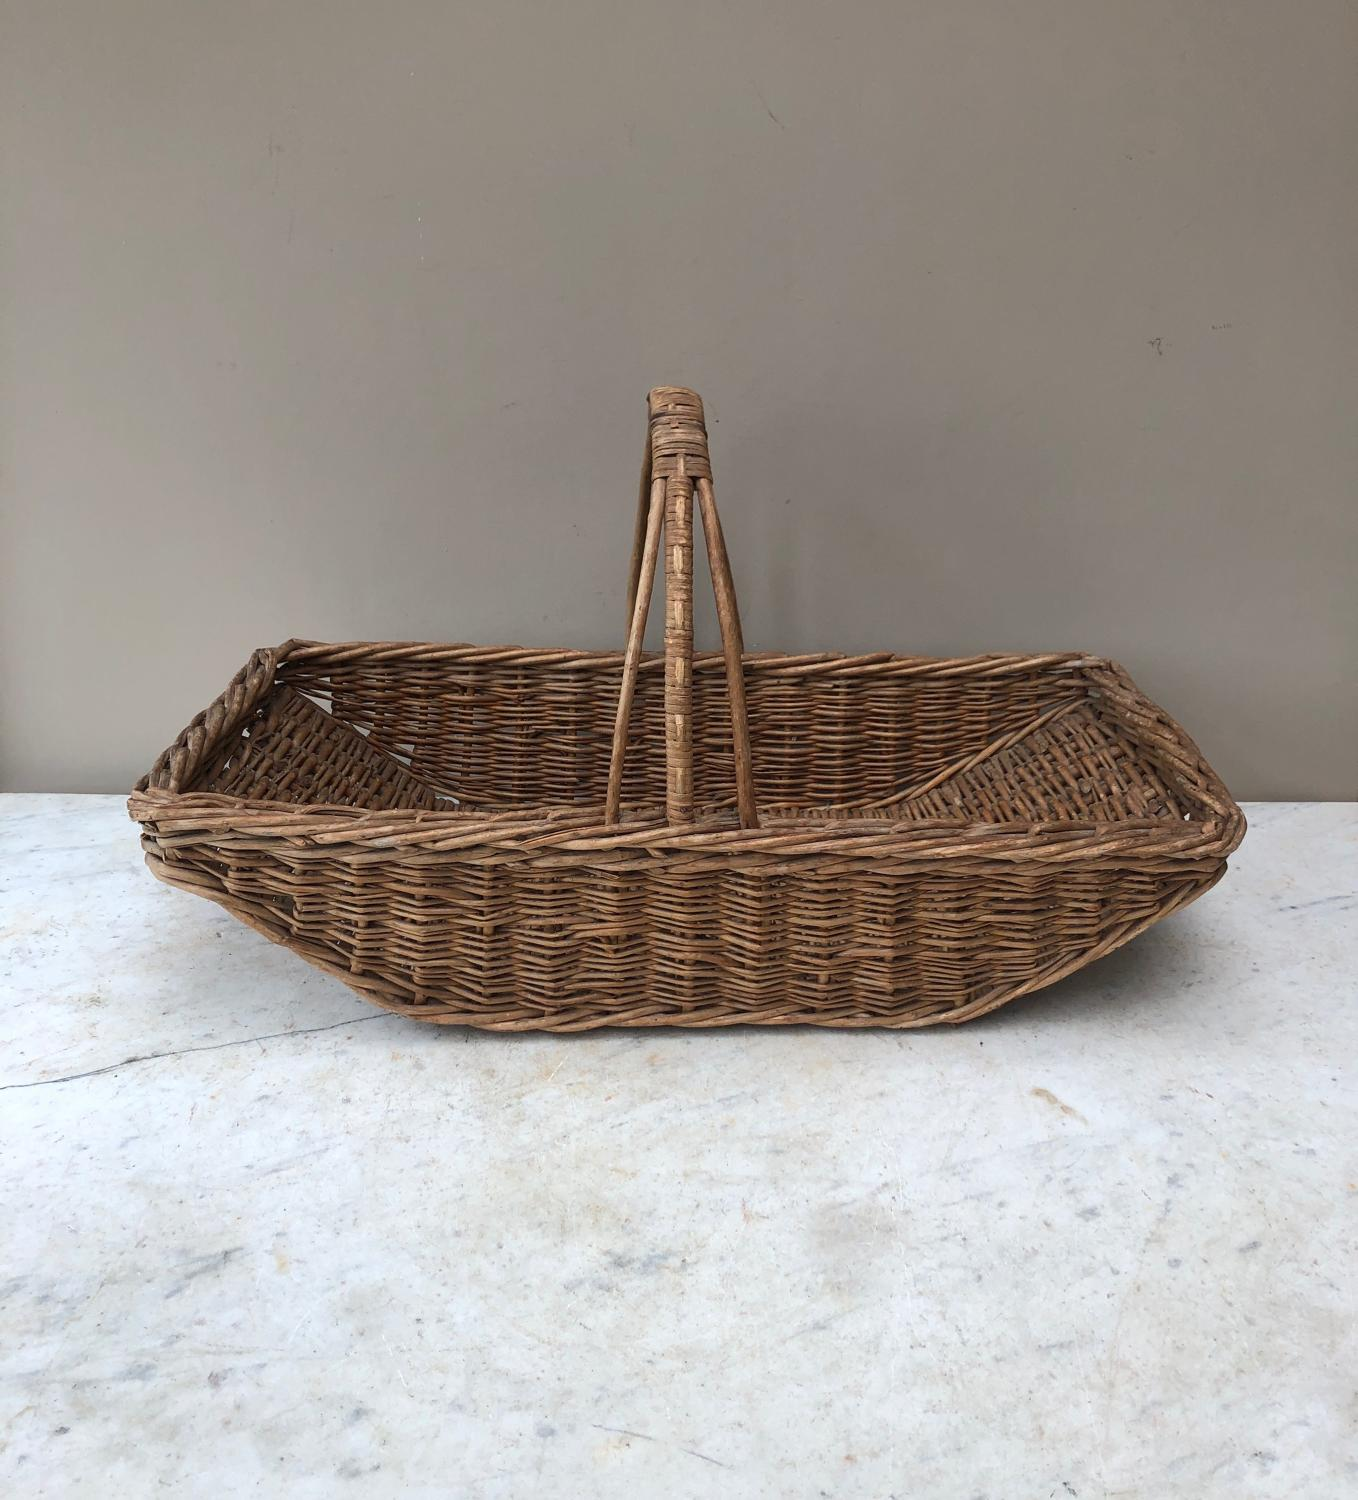 Large Antique Garden Flower Trug Basket c.1930/40